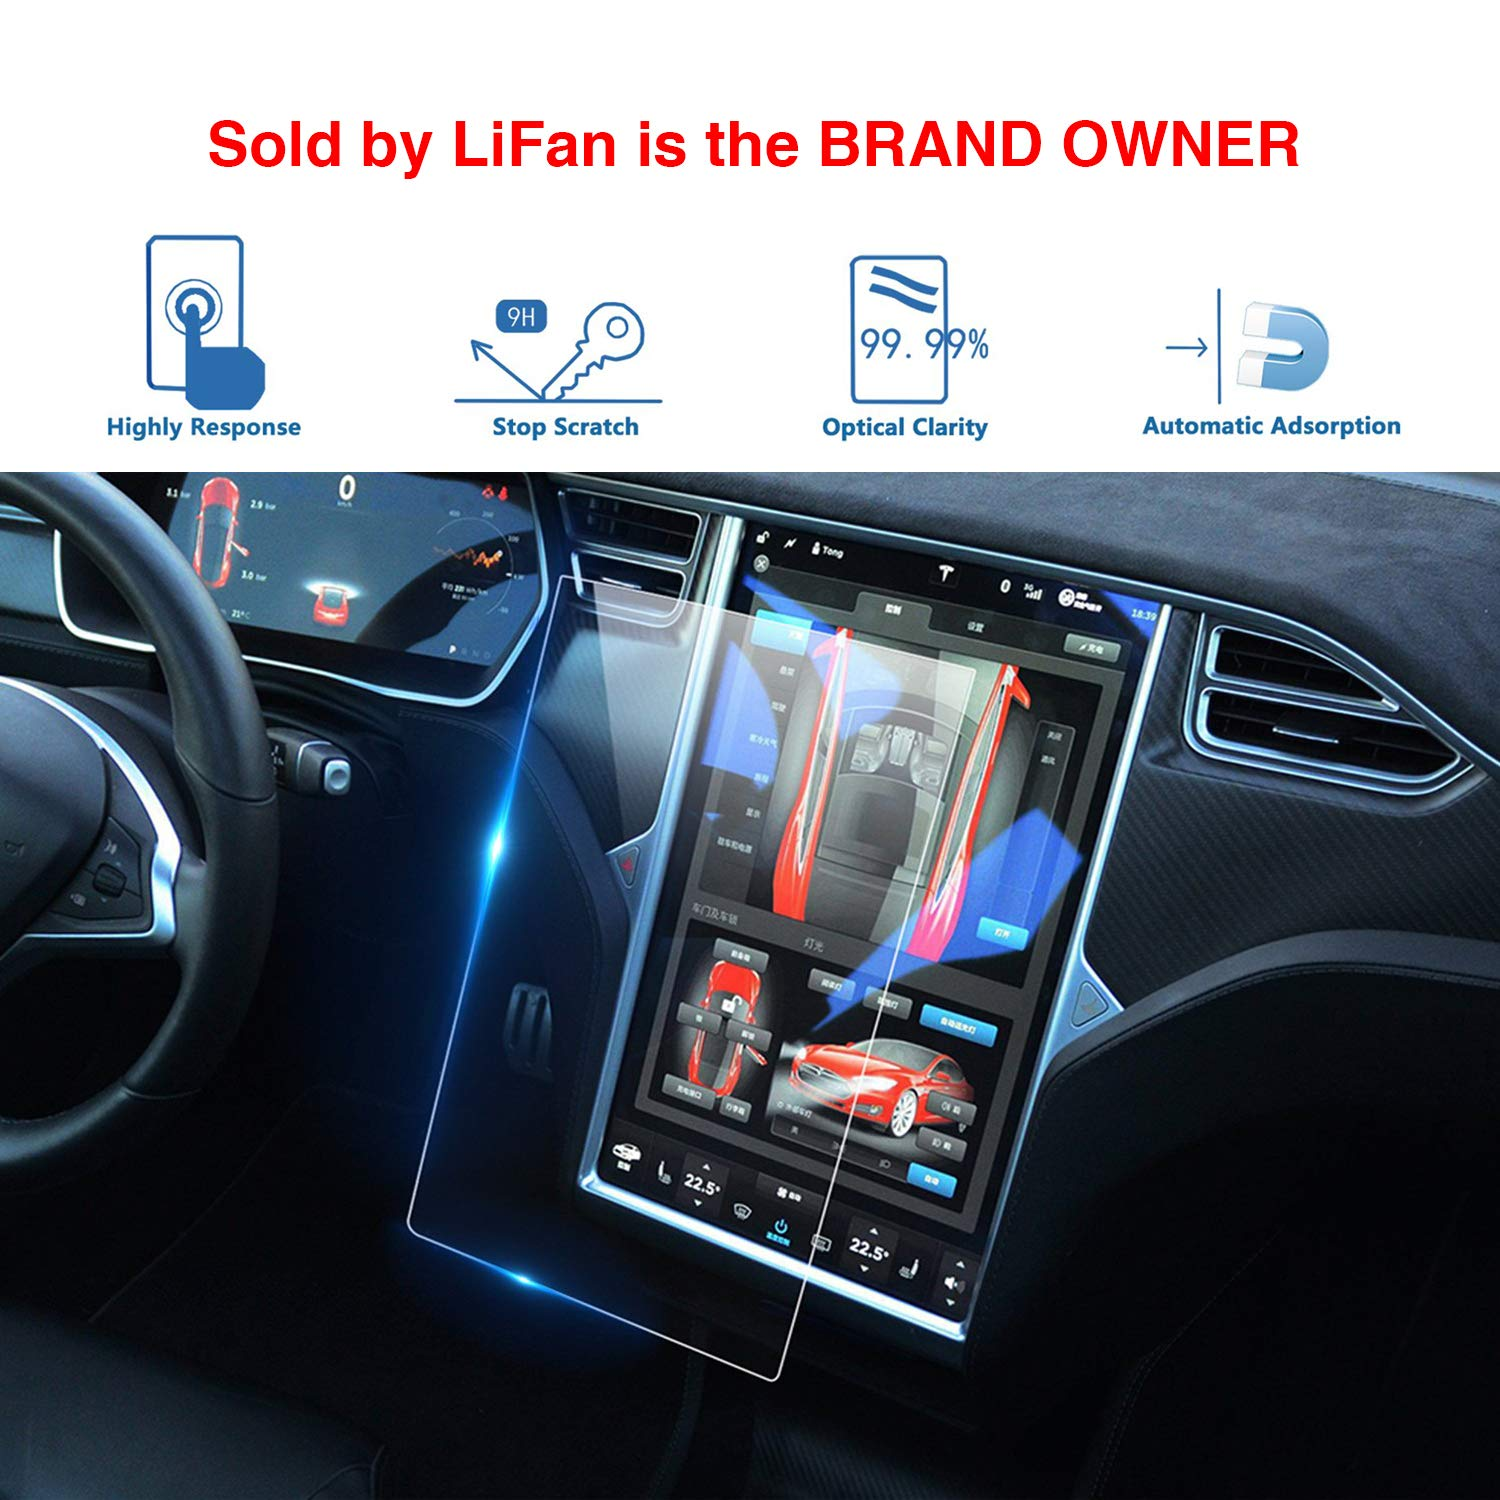 LFOTPP Tesla Model X/Model S 17-Inch Car Navigation Screen Protector, Center Touch Infotainment Media Tempered Glass Touch Screen Protector for 60 60D 70 70D P85D 90D 100 P100D 75D P90D P100D by LFOTPP